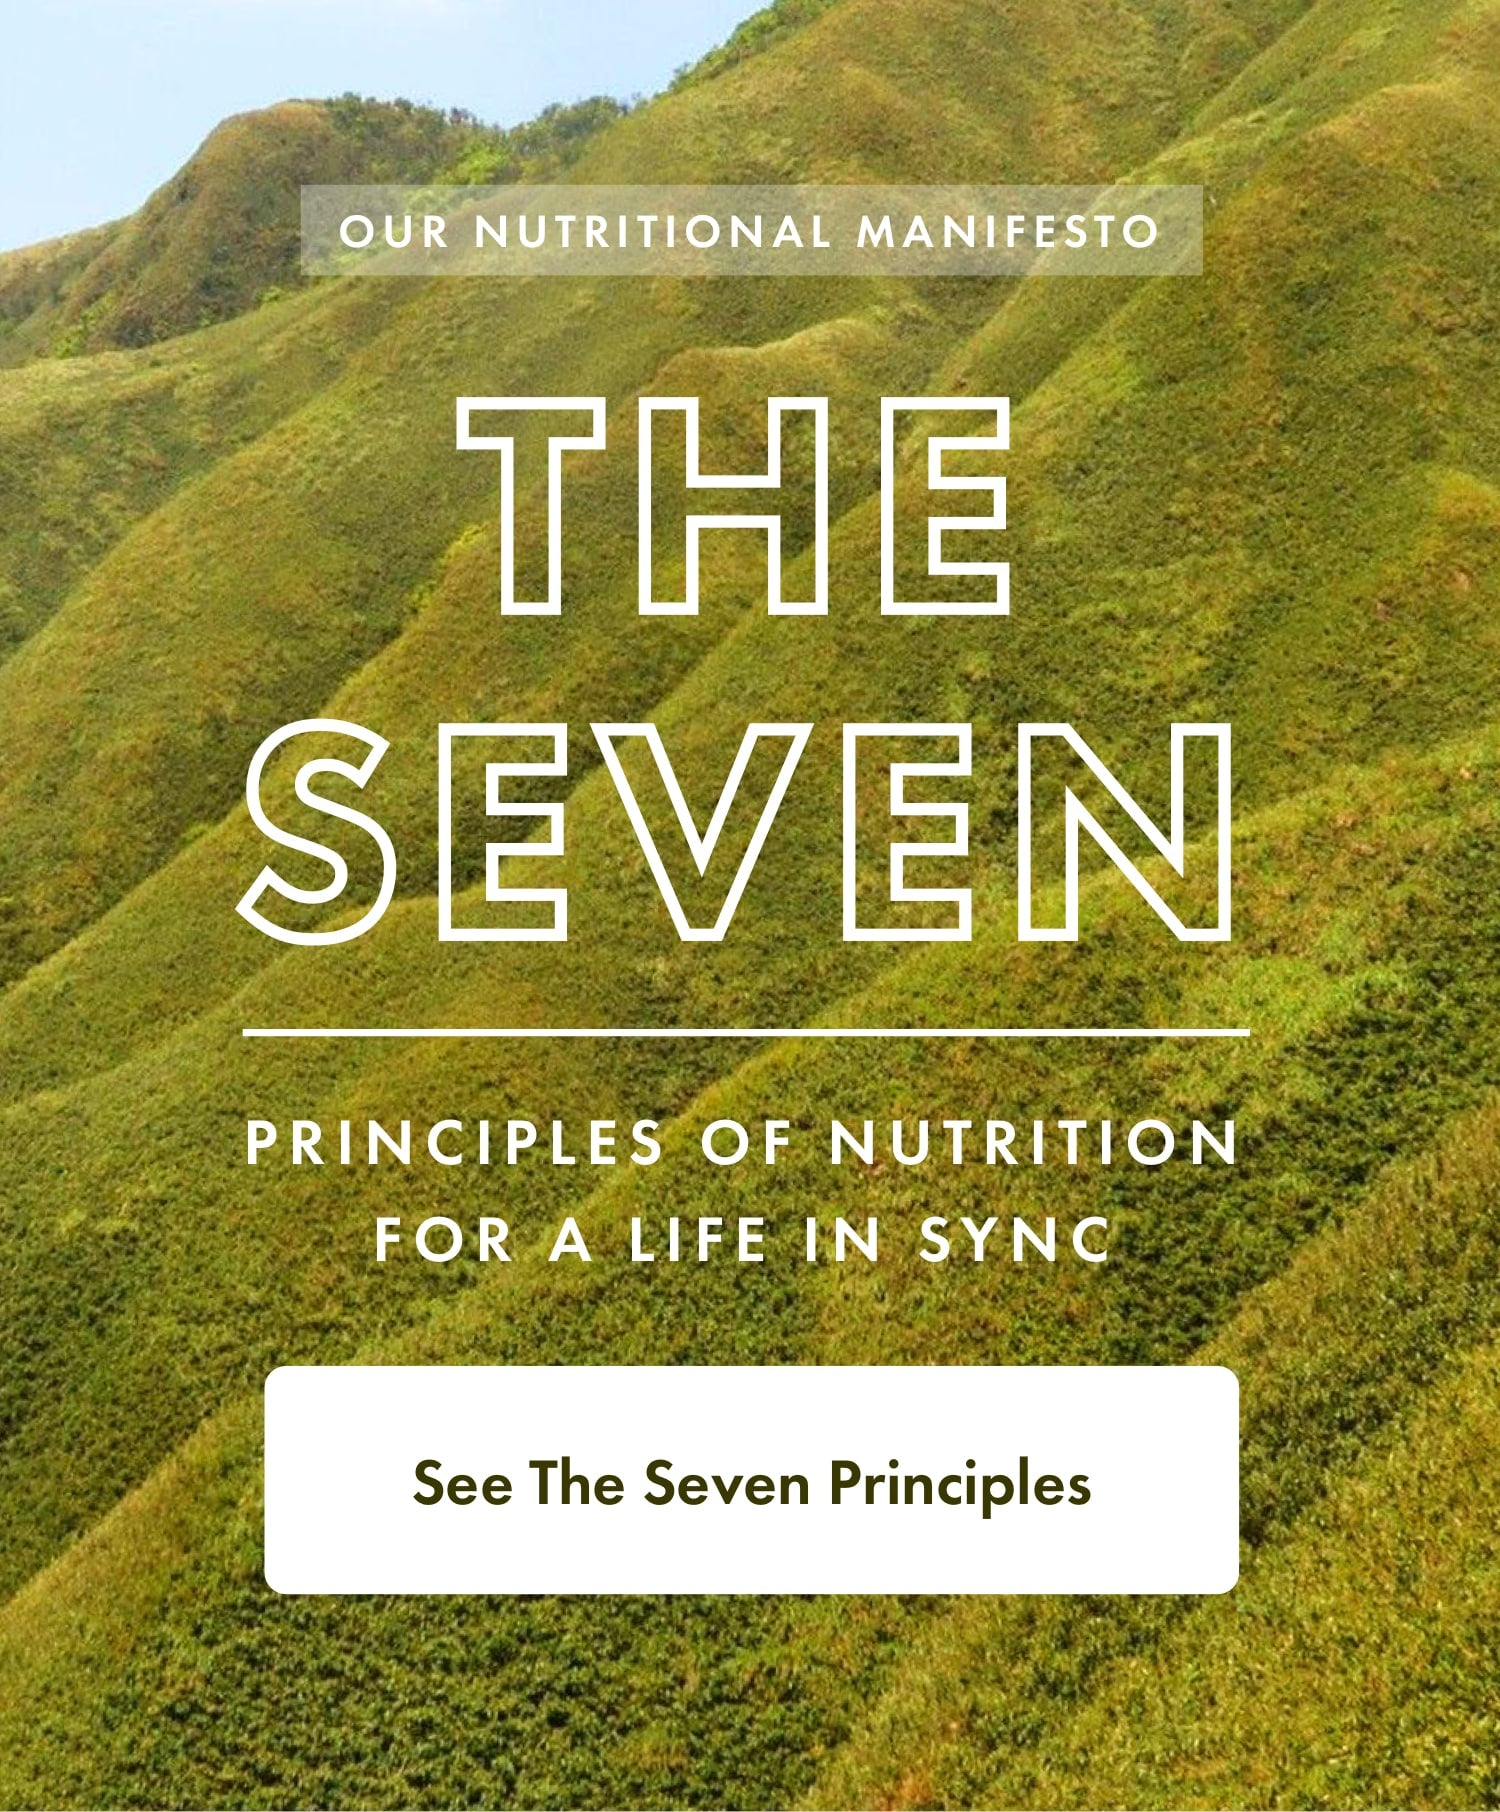 THE SEVEN | Principles Of Nutrition For A Life In Sync